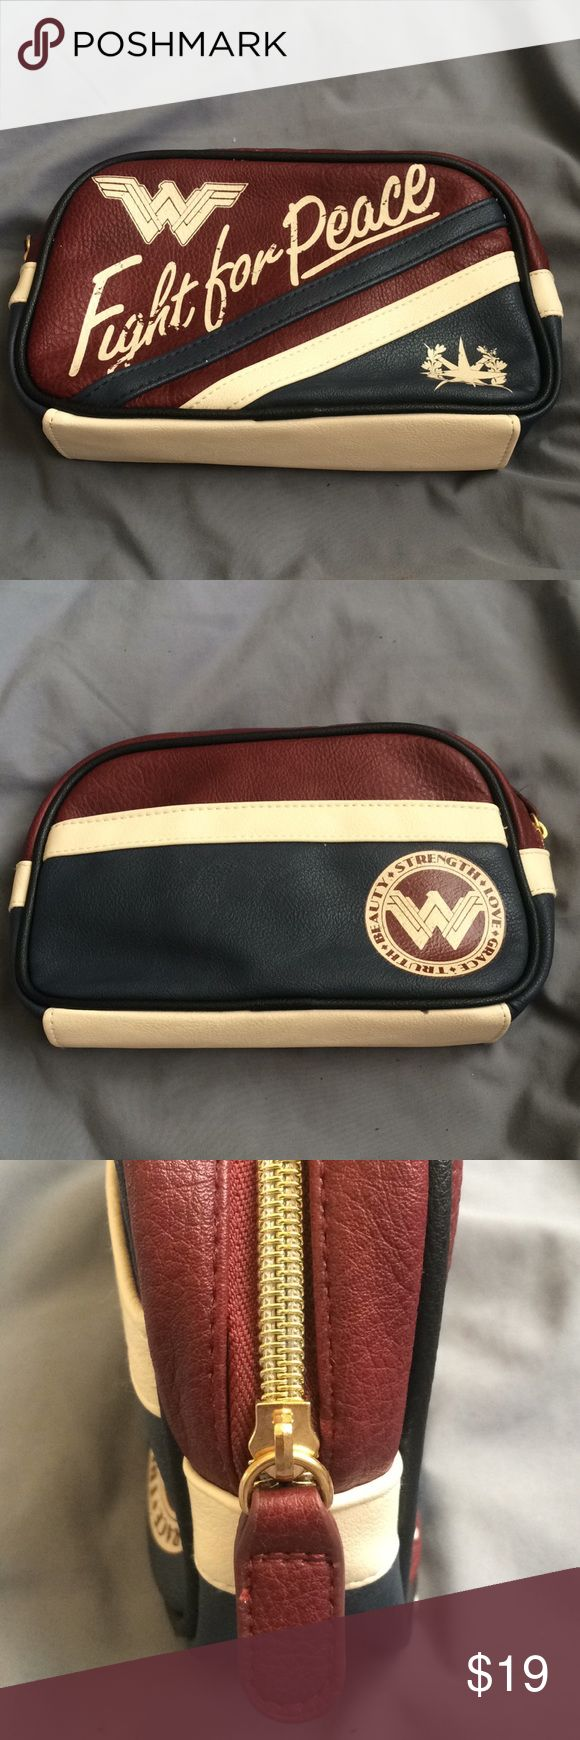 "WONDER WOMAN Make-Up bag Red, white and blue Wonder Woman make up bag. This zip-up bag features a ""Fight For Peace"" logo. Never used brand new. Officially licensed. Bags Cosmetic Bags & Cases"